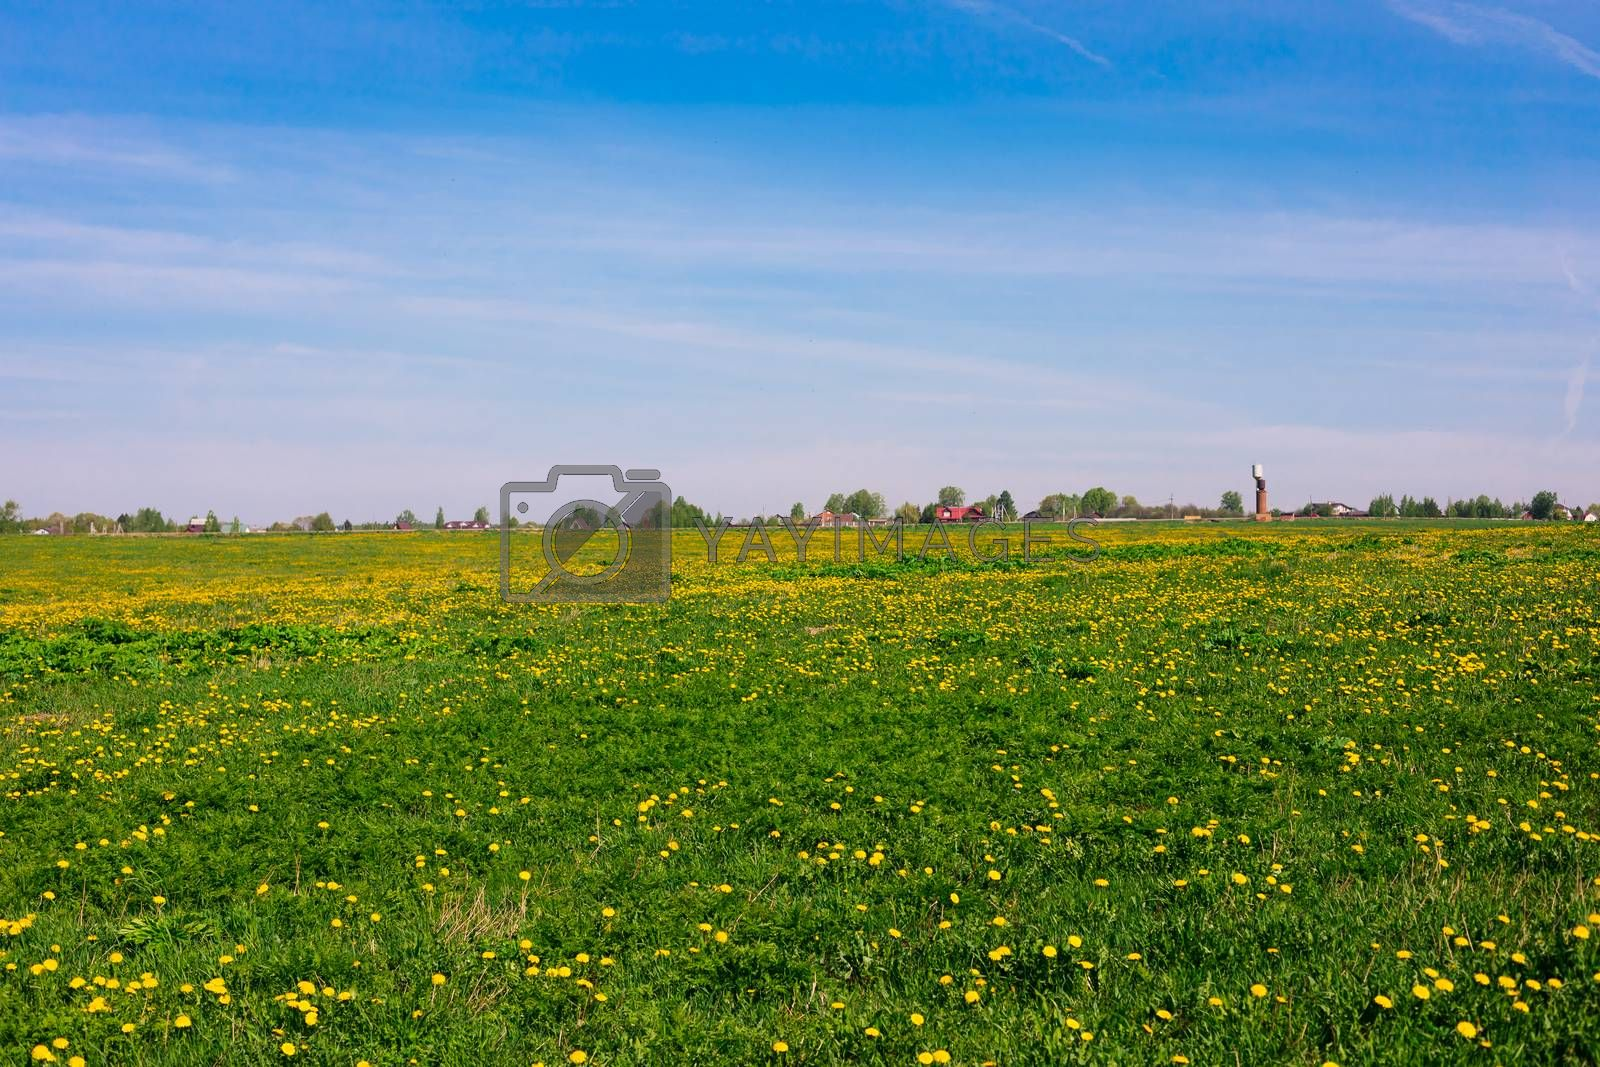 A field with yellow dandelions in the daylight, rural, countryside lanscape, blue sky